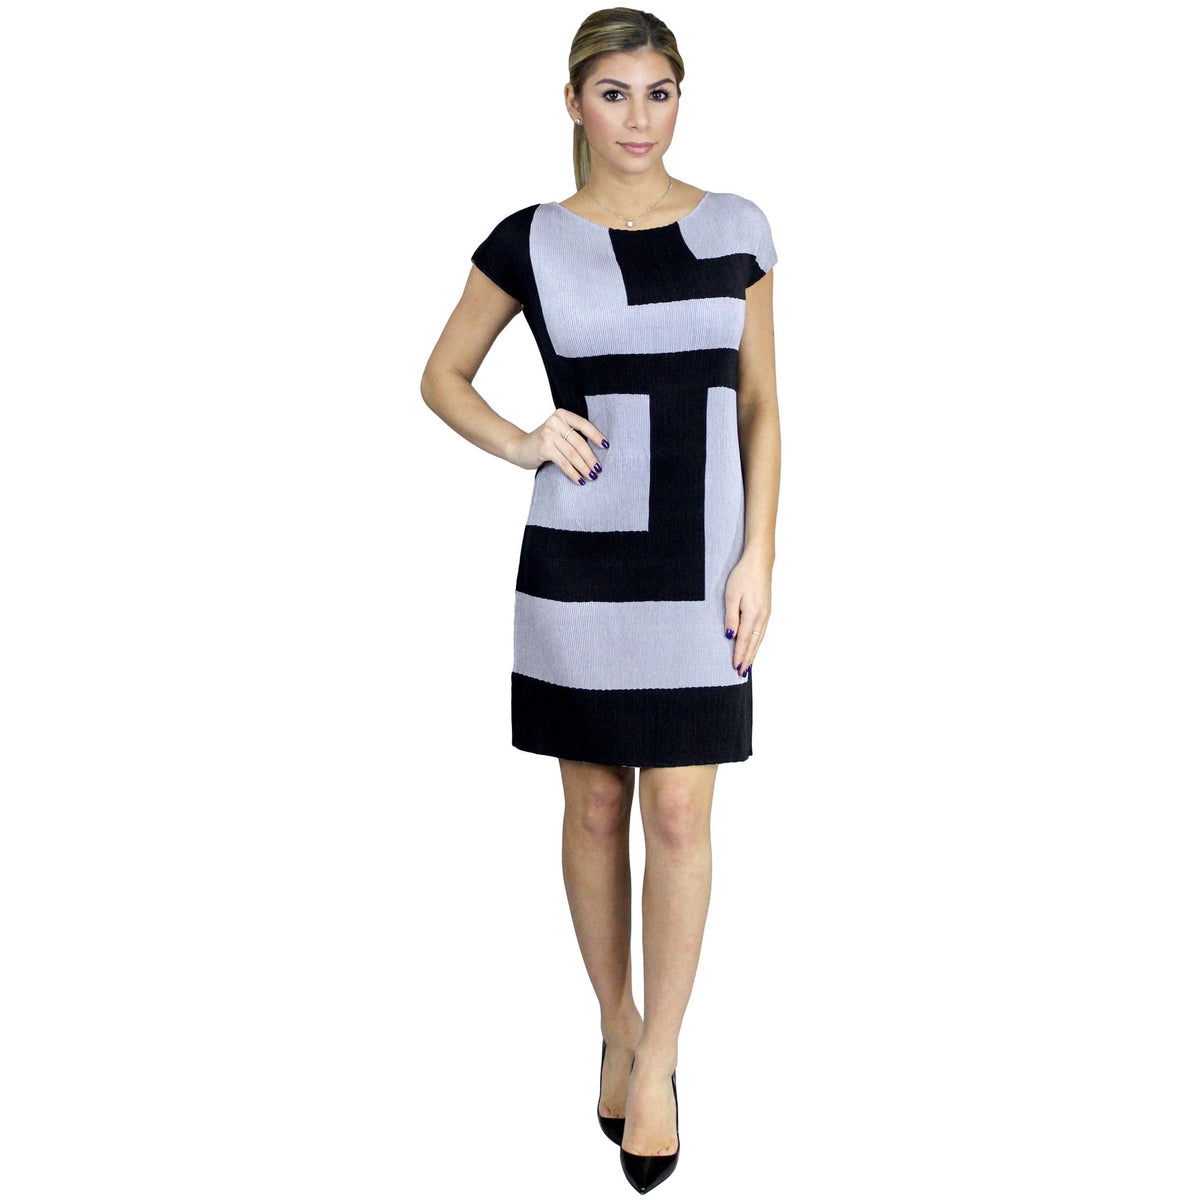 Colorblock Crinkle Sheath Crinkle Dress - Black